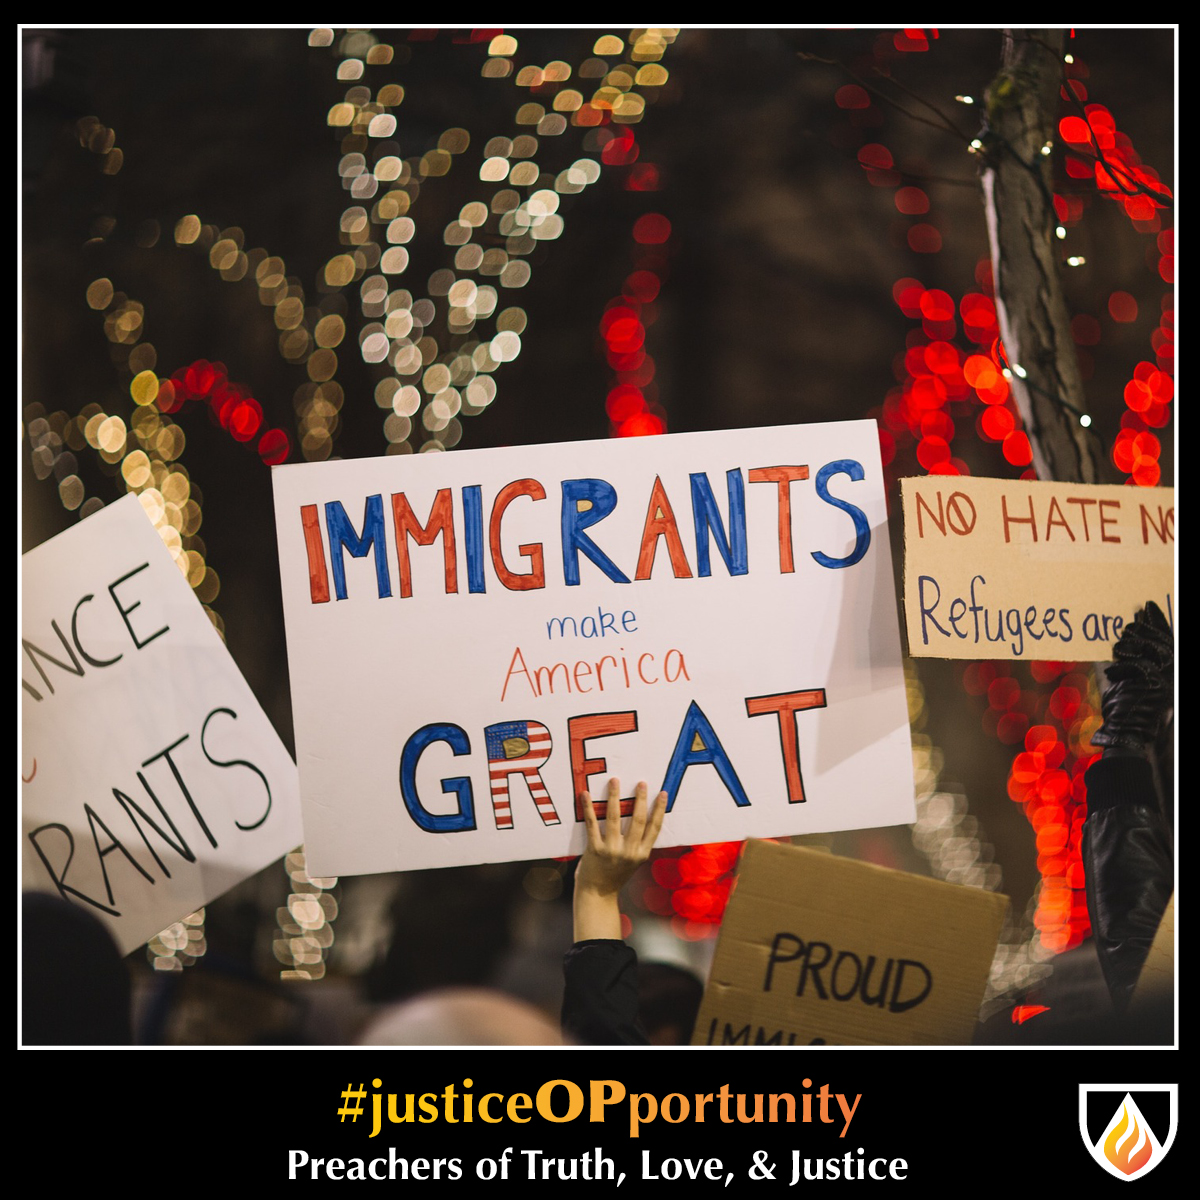 #justiceOPportunity Thursday: June 11, 2020